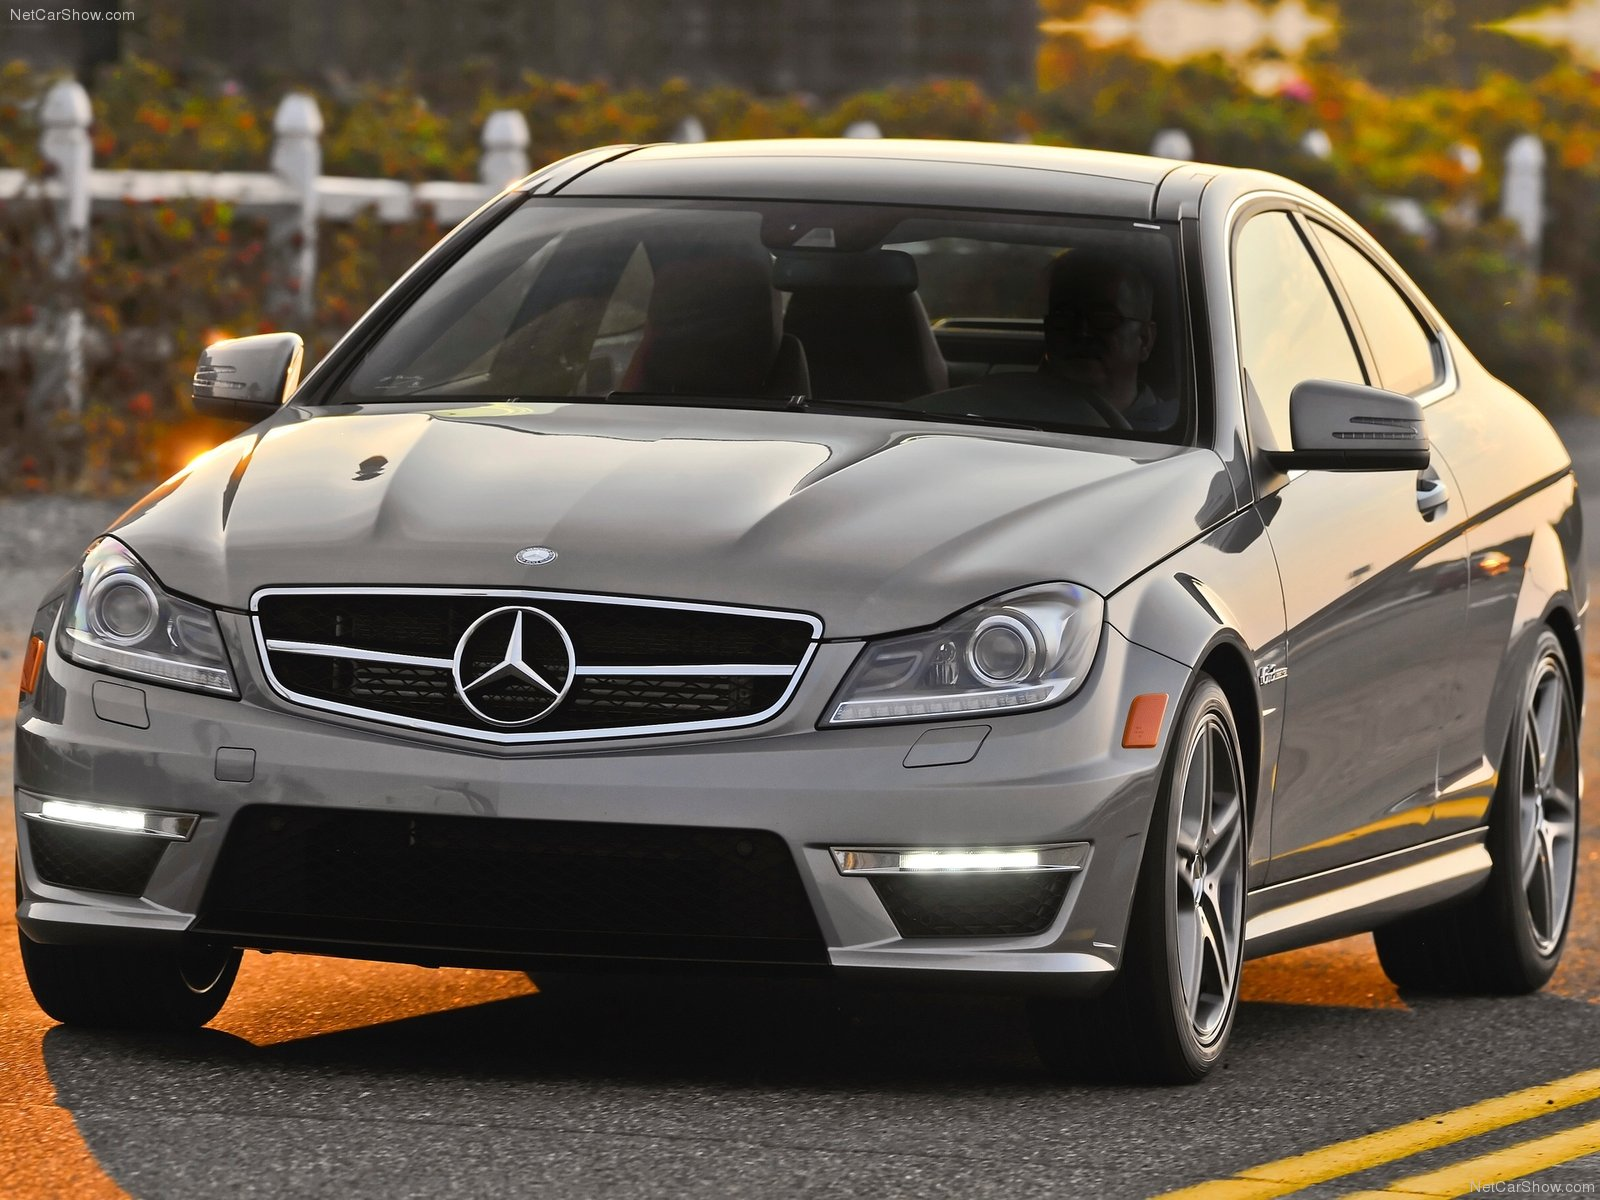 Mercedes-Benz C63 AMG Coupe photo 84566